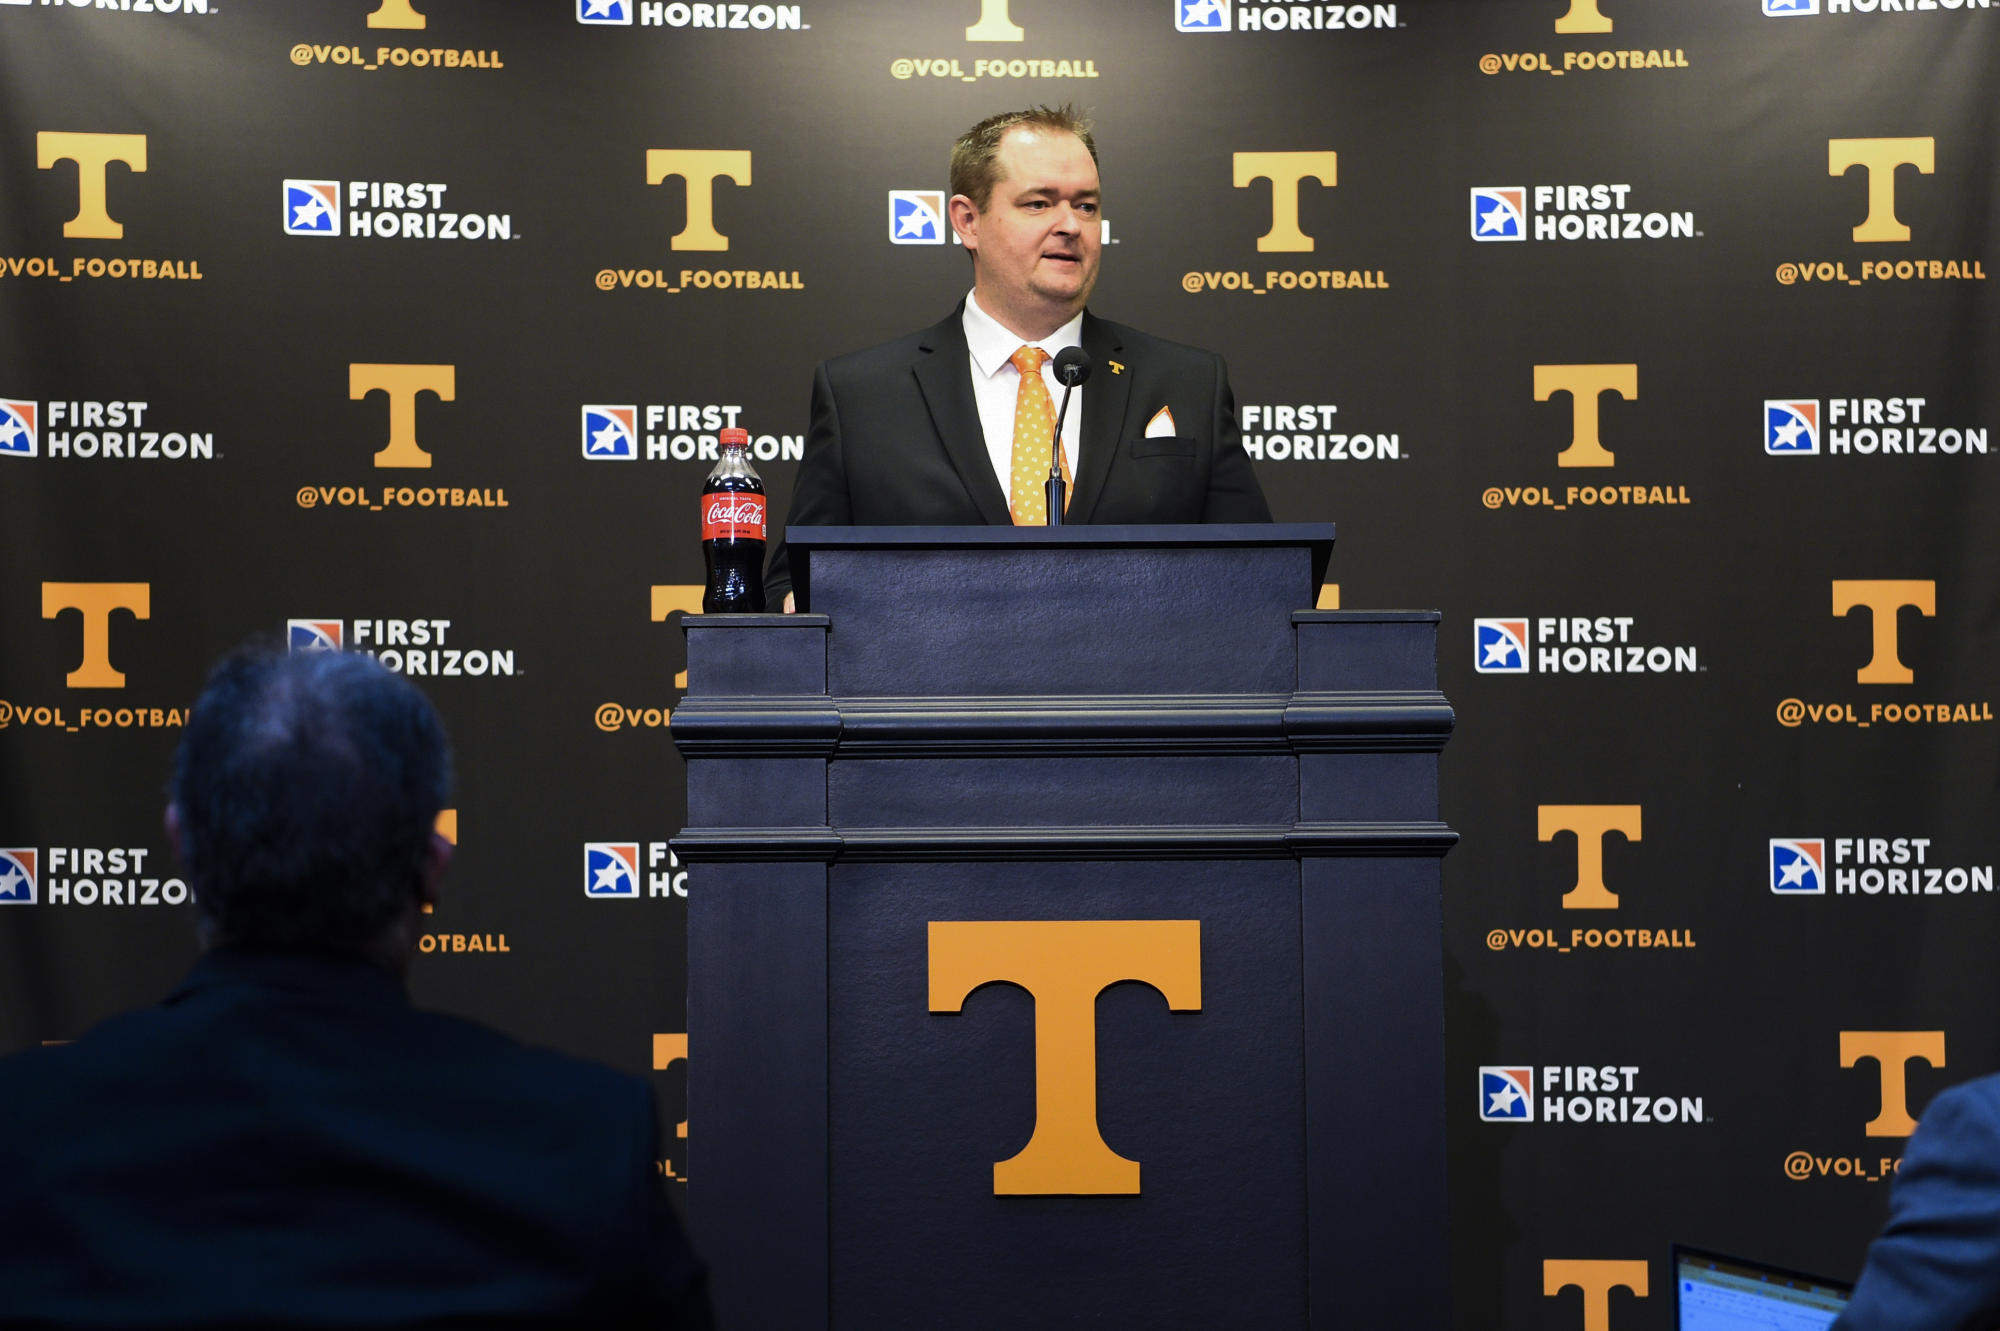 Like it or not Tennessee fans, Josh Heupel was a good choice — and he doesn't care what you think